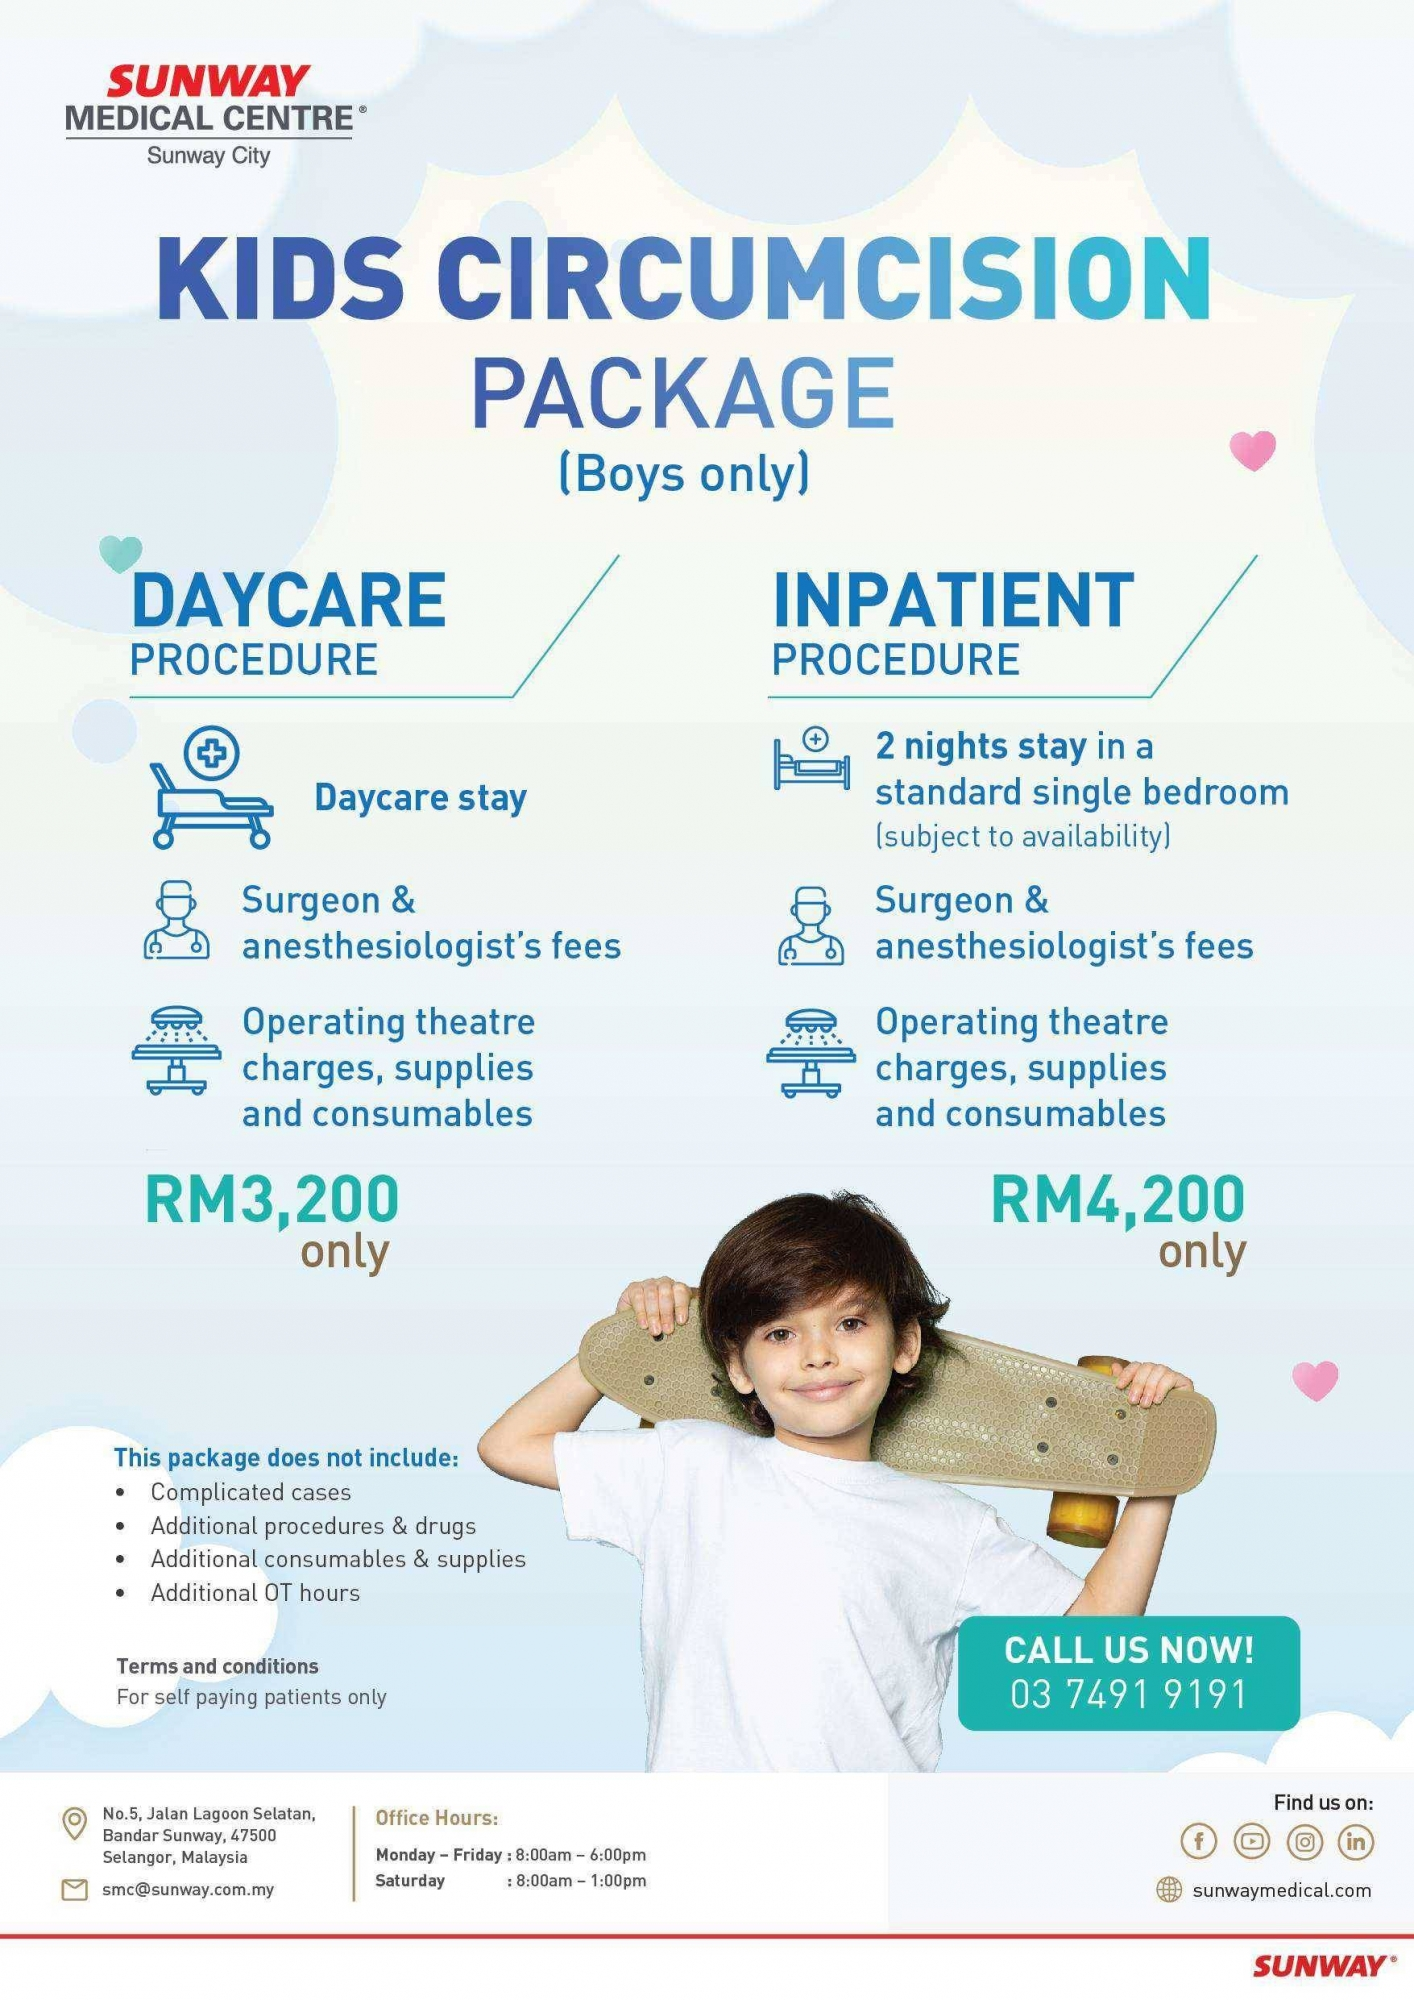 Kids Circumcision Package (Boys only)